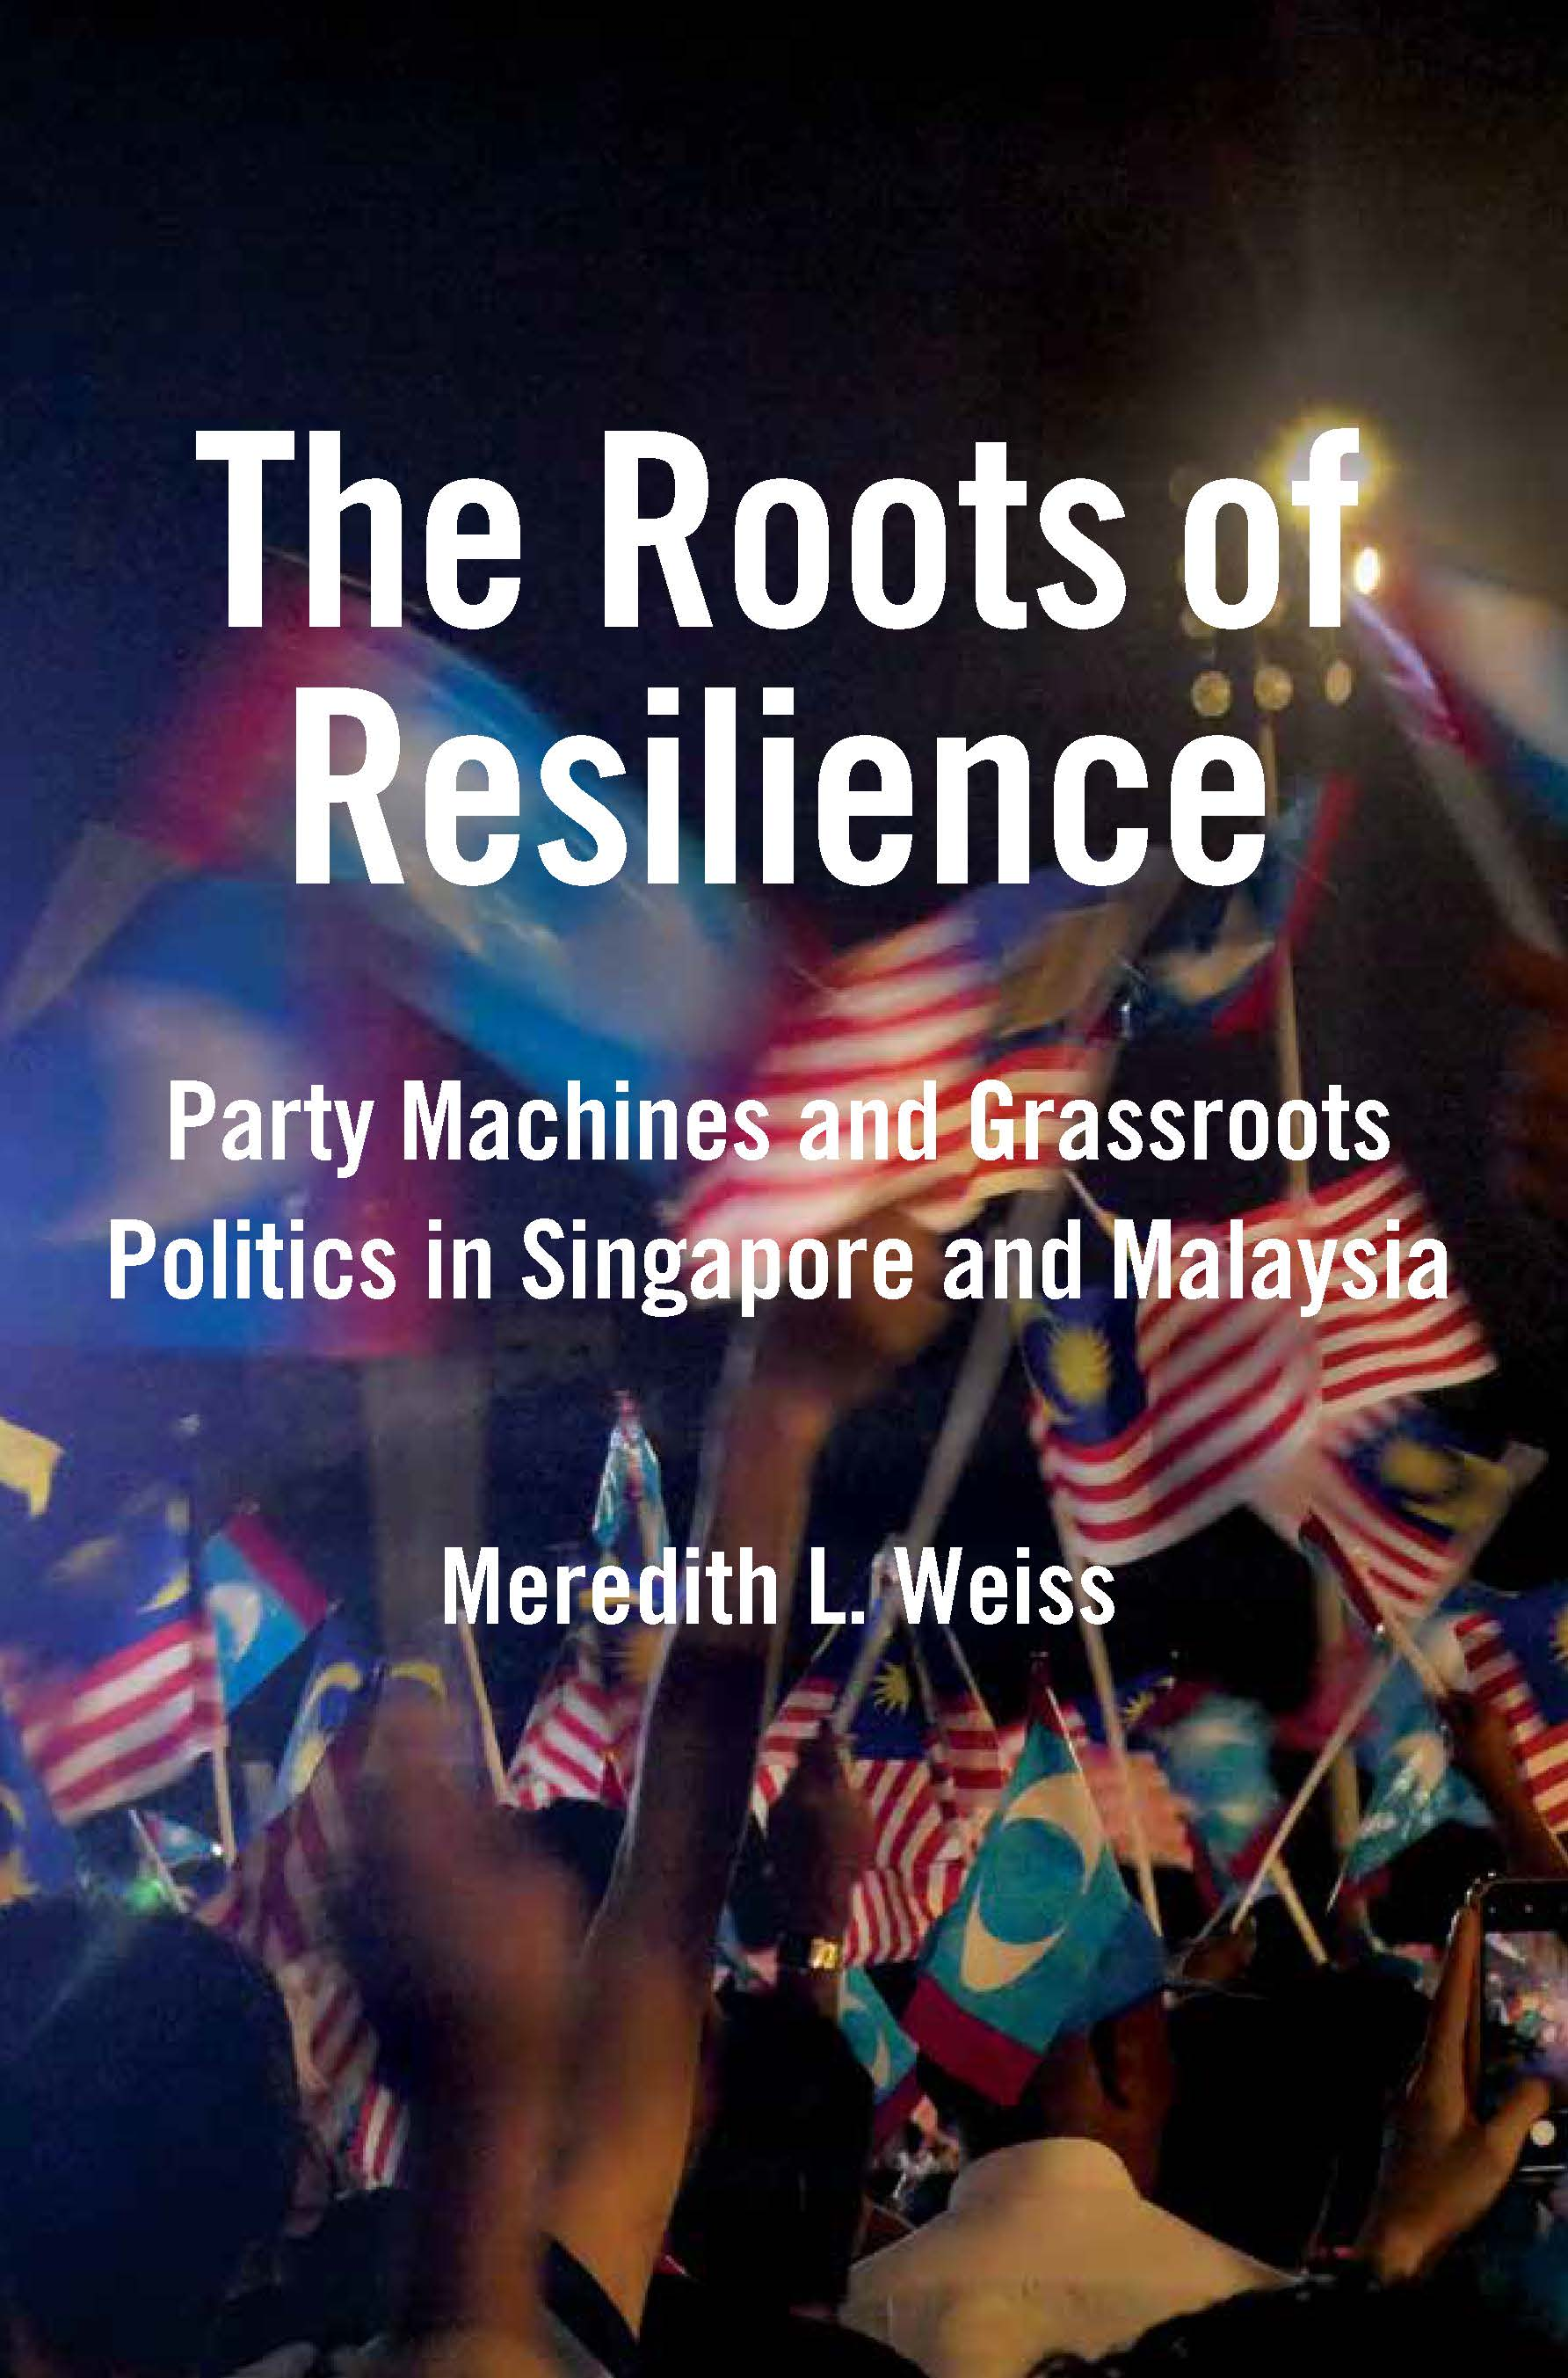 The Roots of Resilience: Party Machines and Grassroots Politics in Singapore and Malaysia